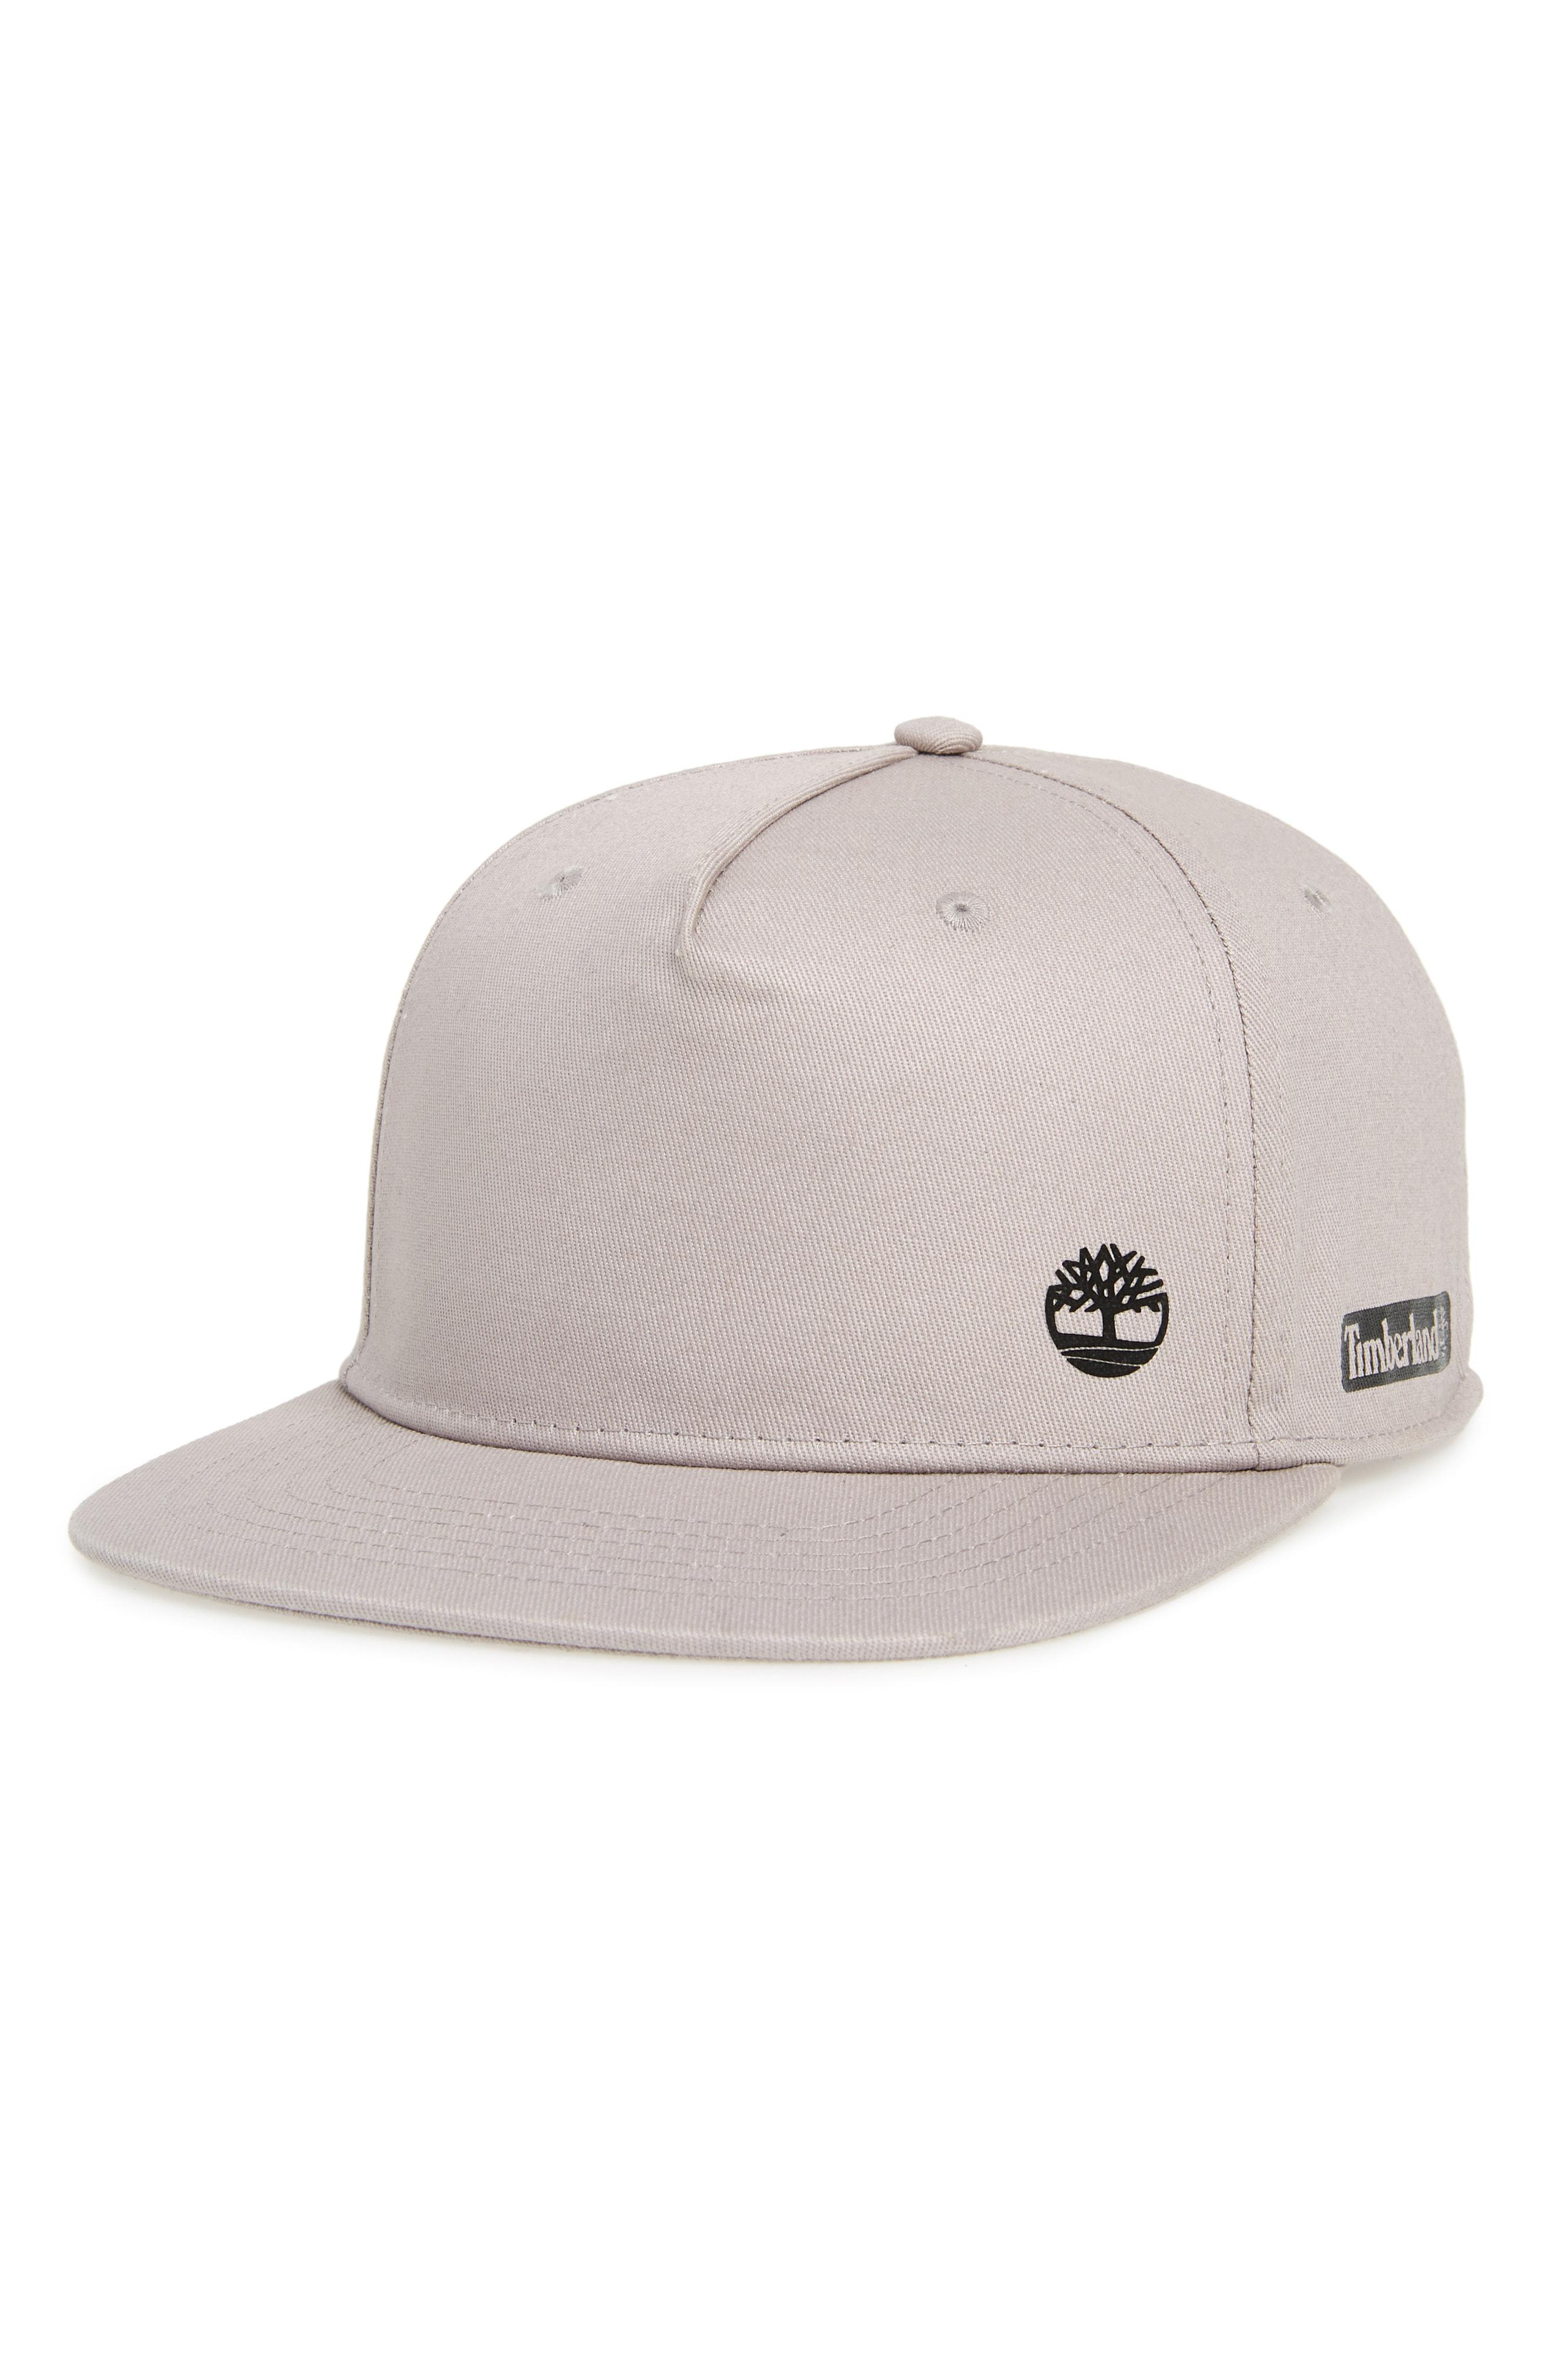 Lyst - Timberland Castle Hill Baseball Cap in Gray for Men - Save ... 8703510c3e48